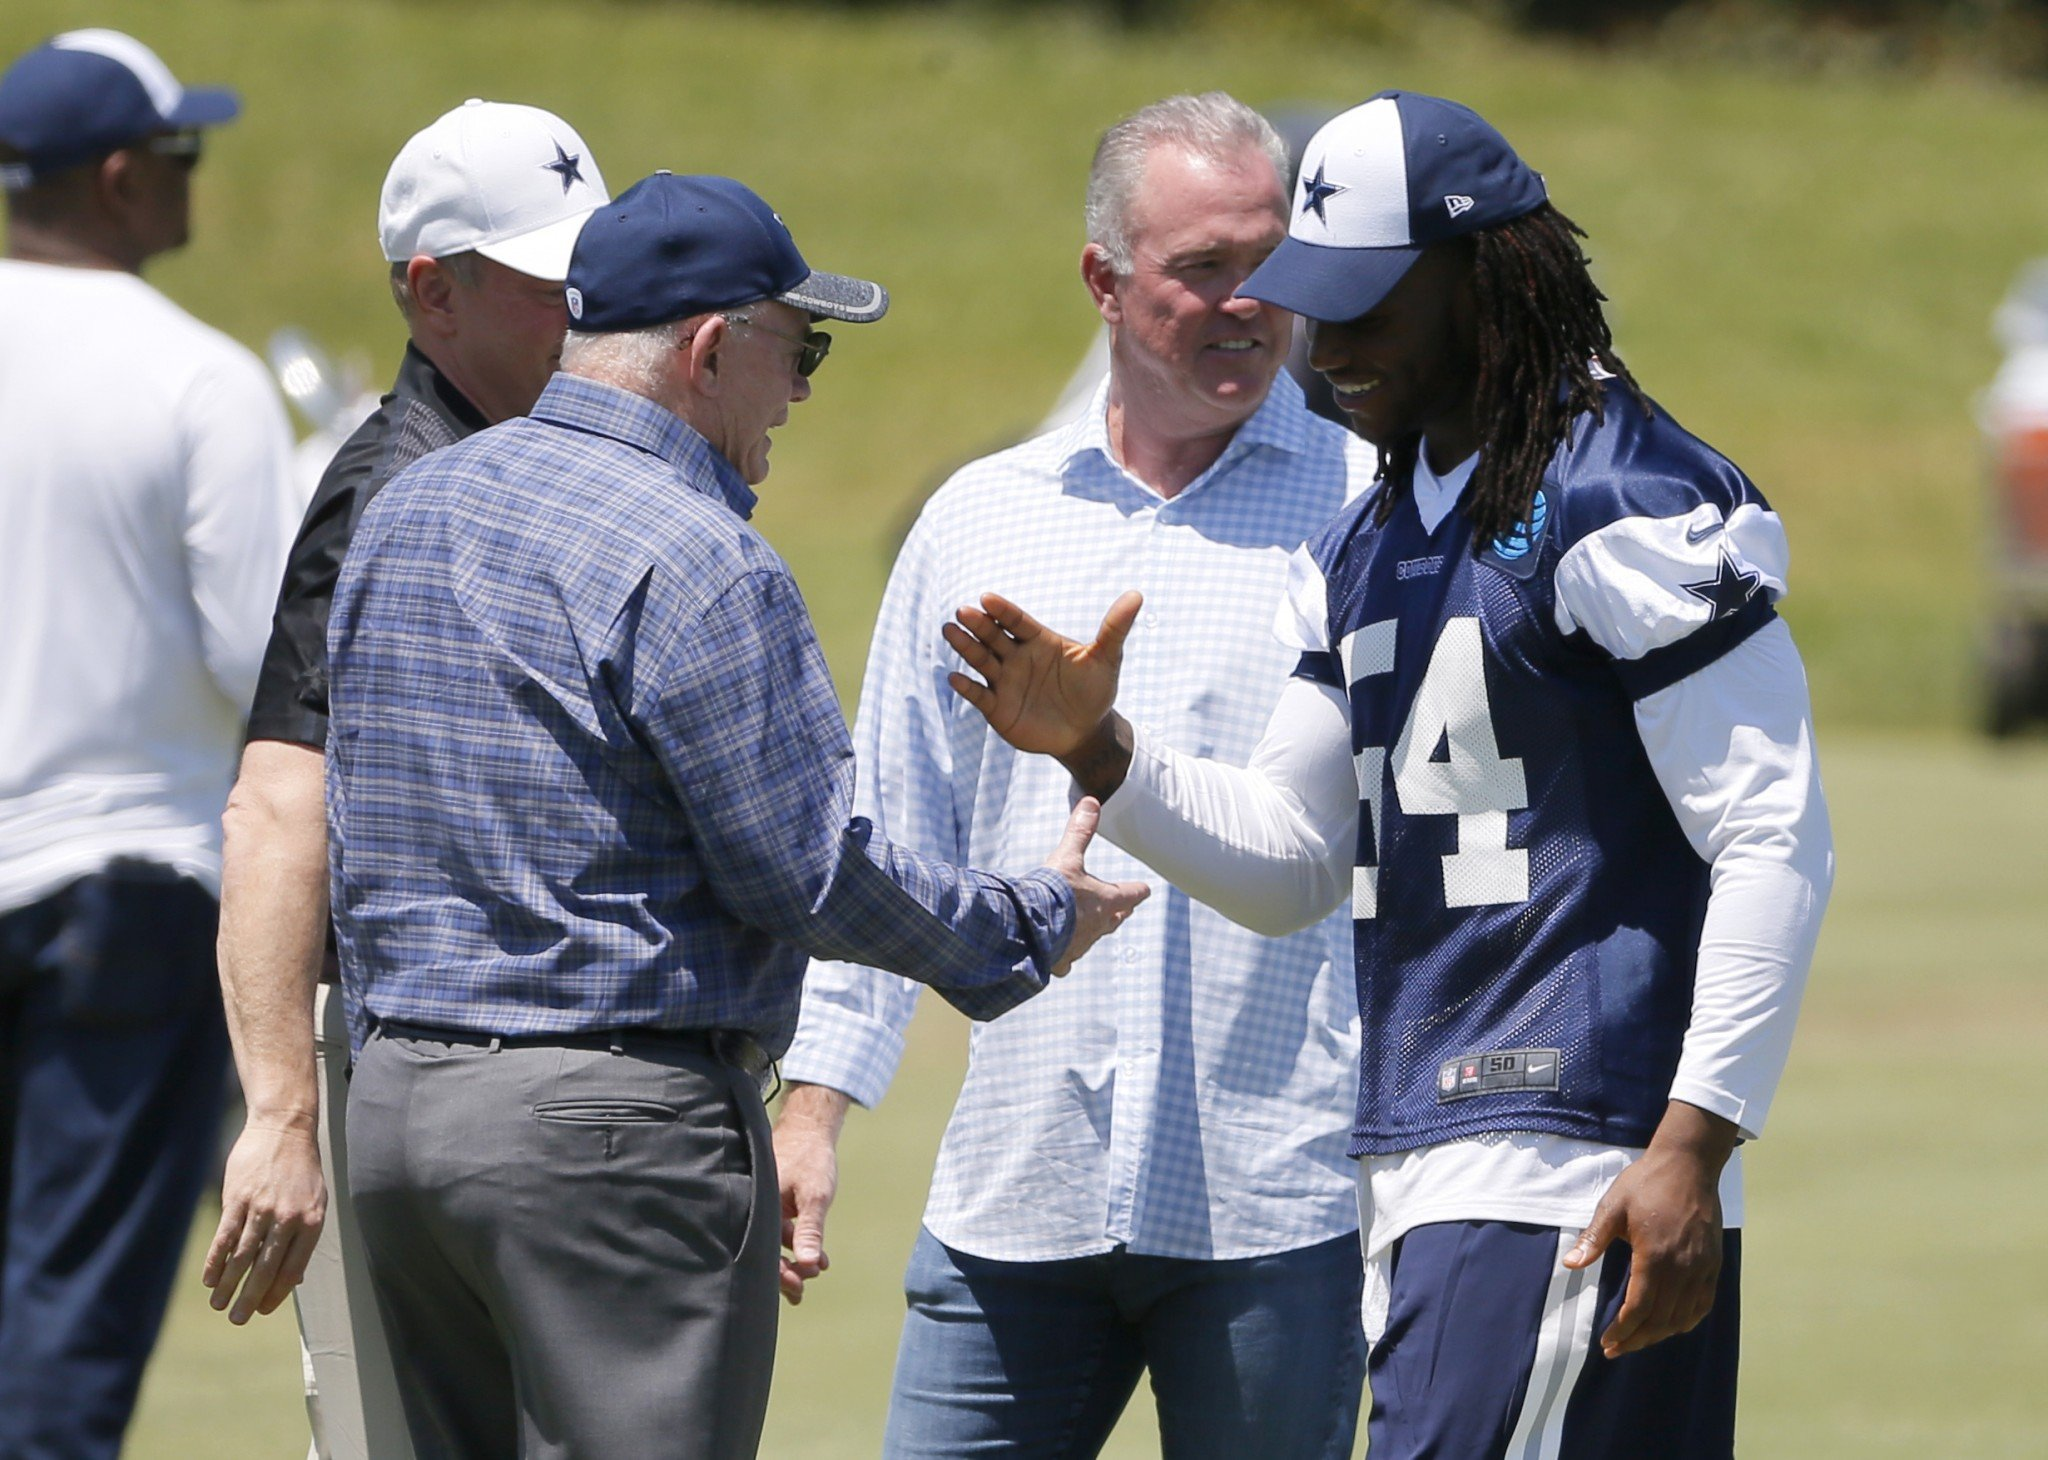 Dallas Cowboys linebacker Jaylon Smith is making encouraging progress from a devastating knee injury but still might not be ready. (AP)